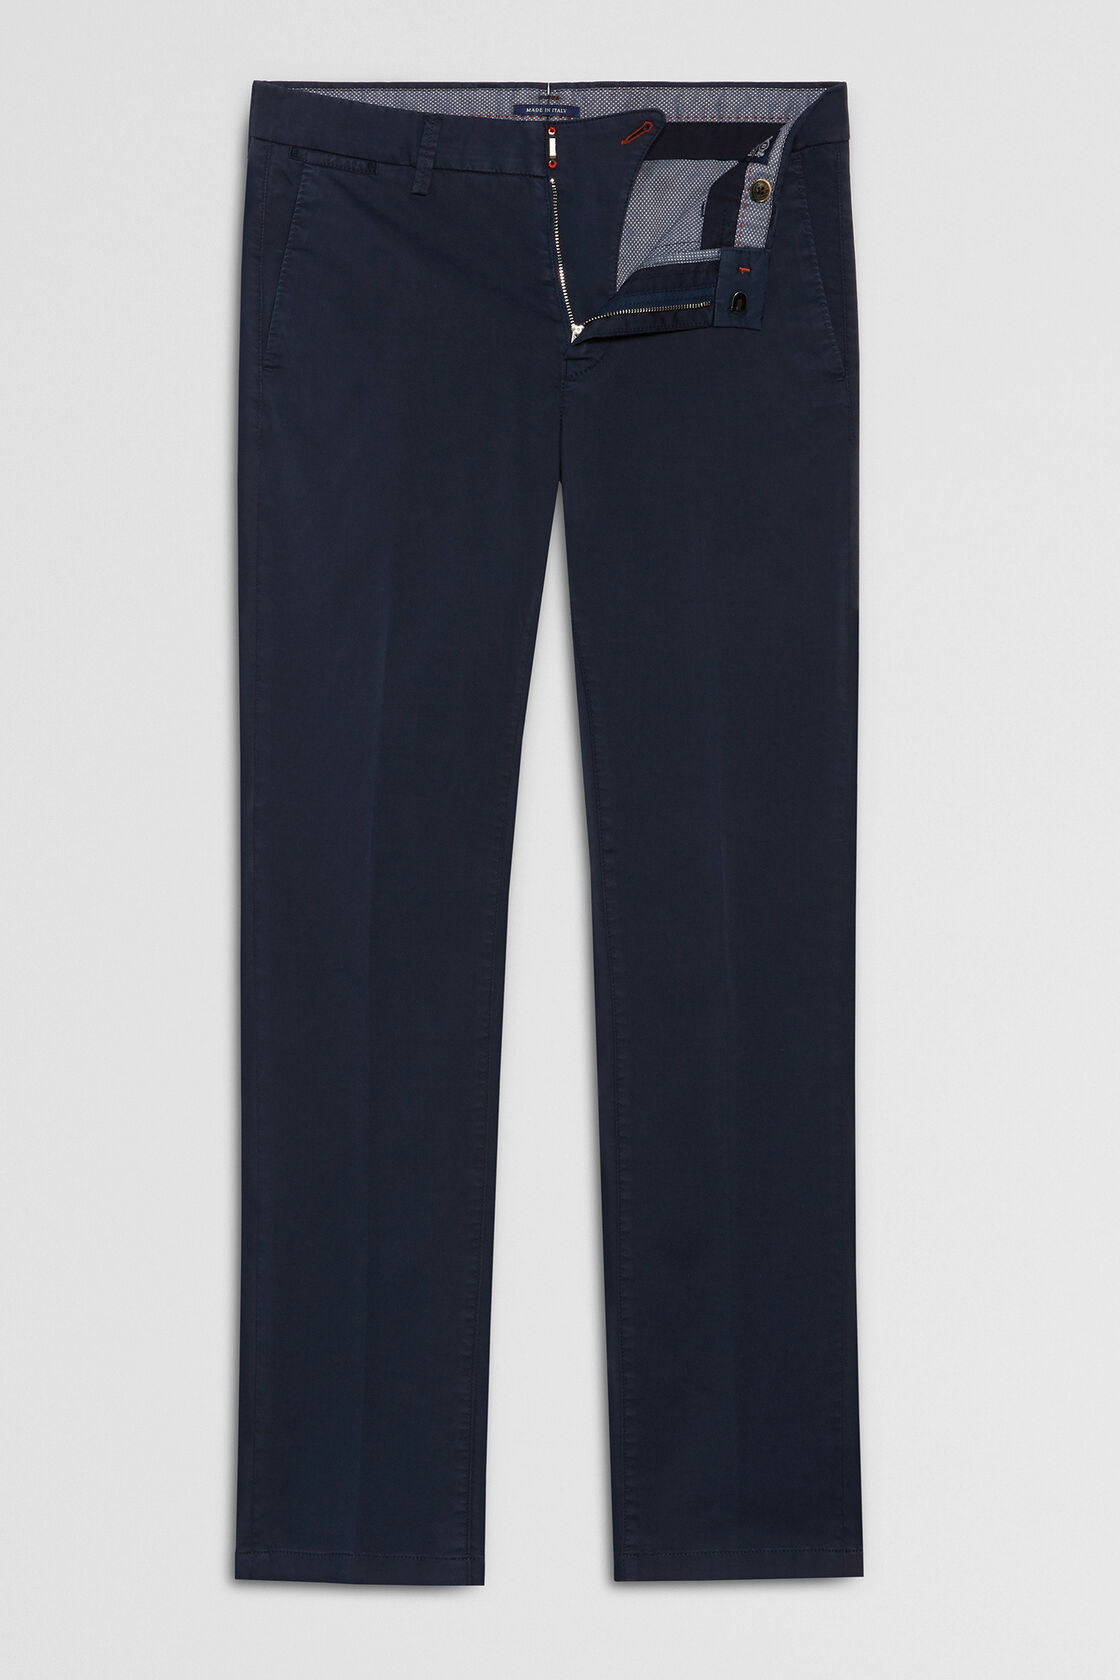 PANTALONE IN RASO DI COTONE STRETCH SLIM FIT, NAVY, hi-res